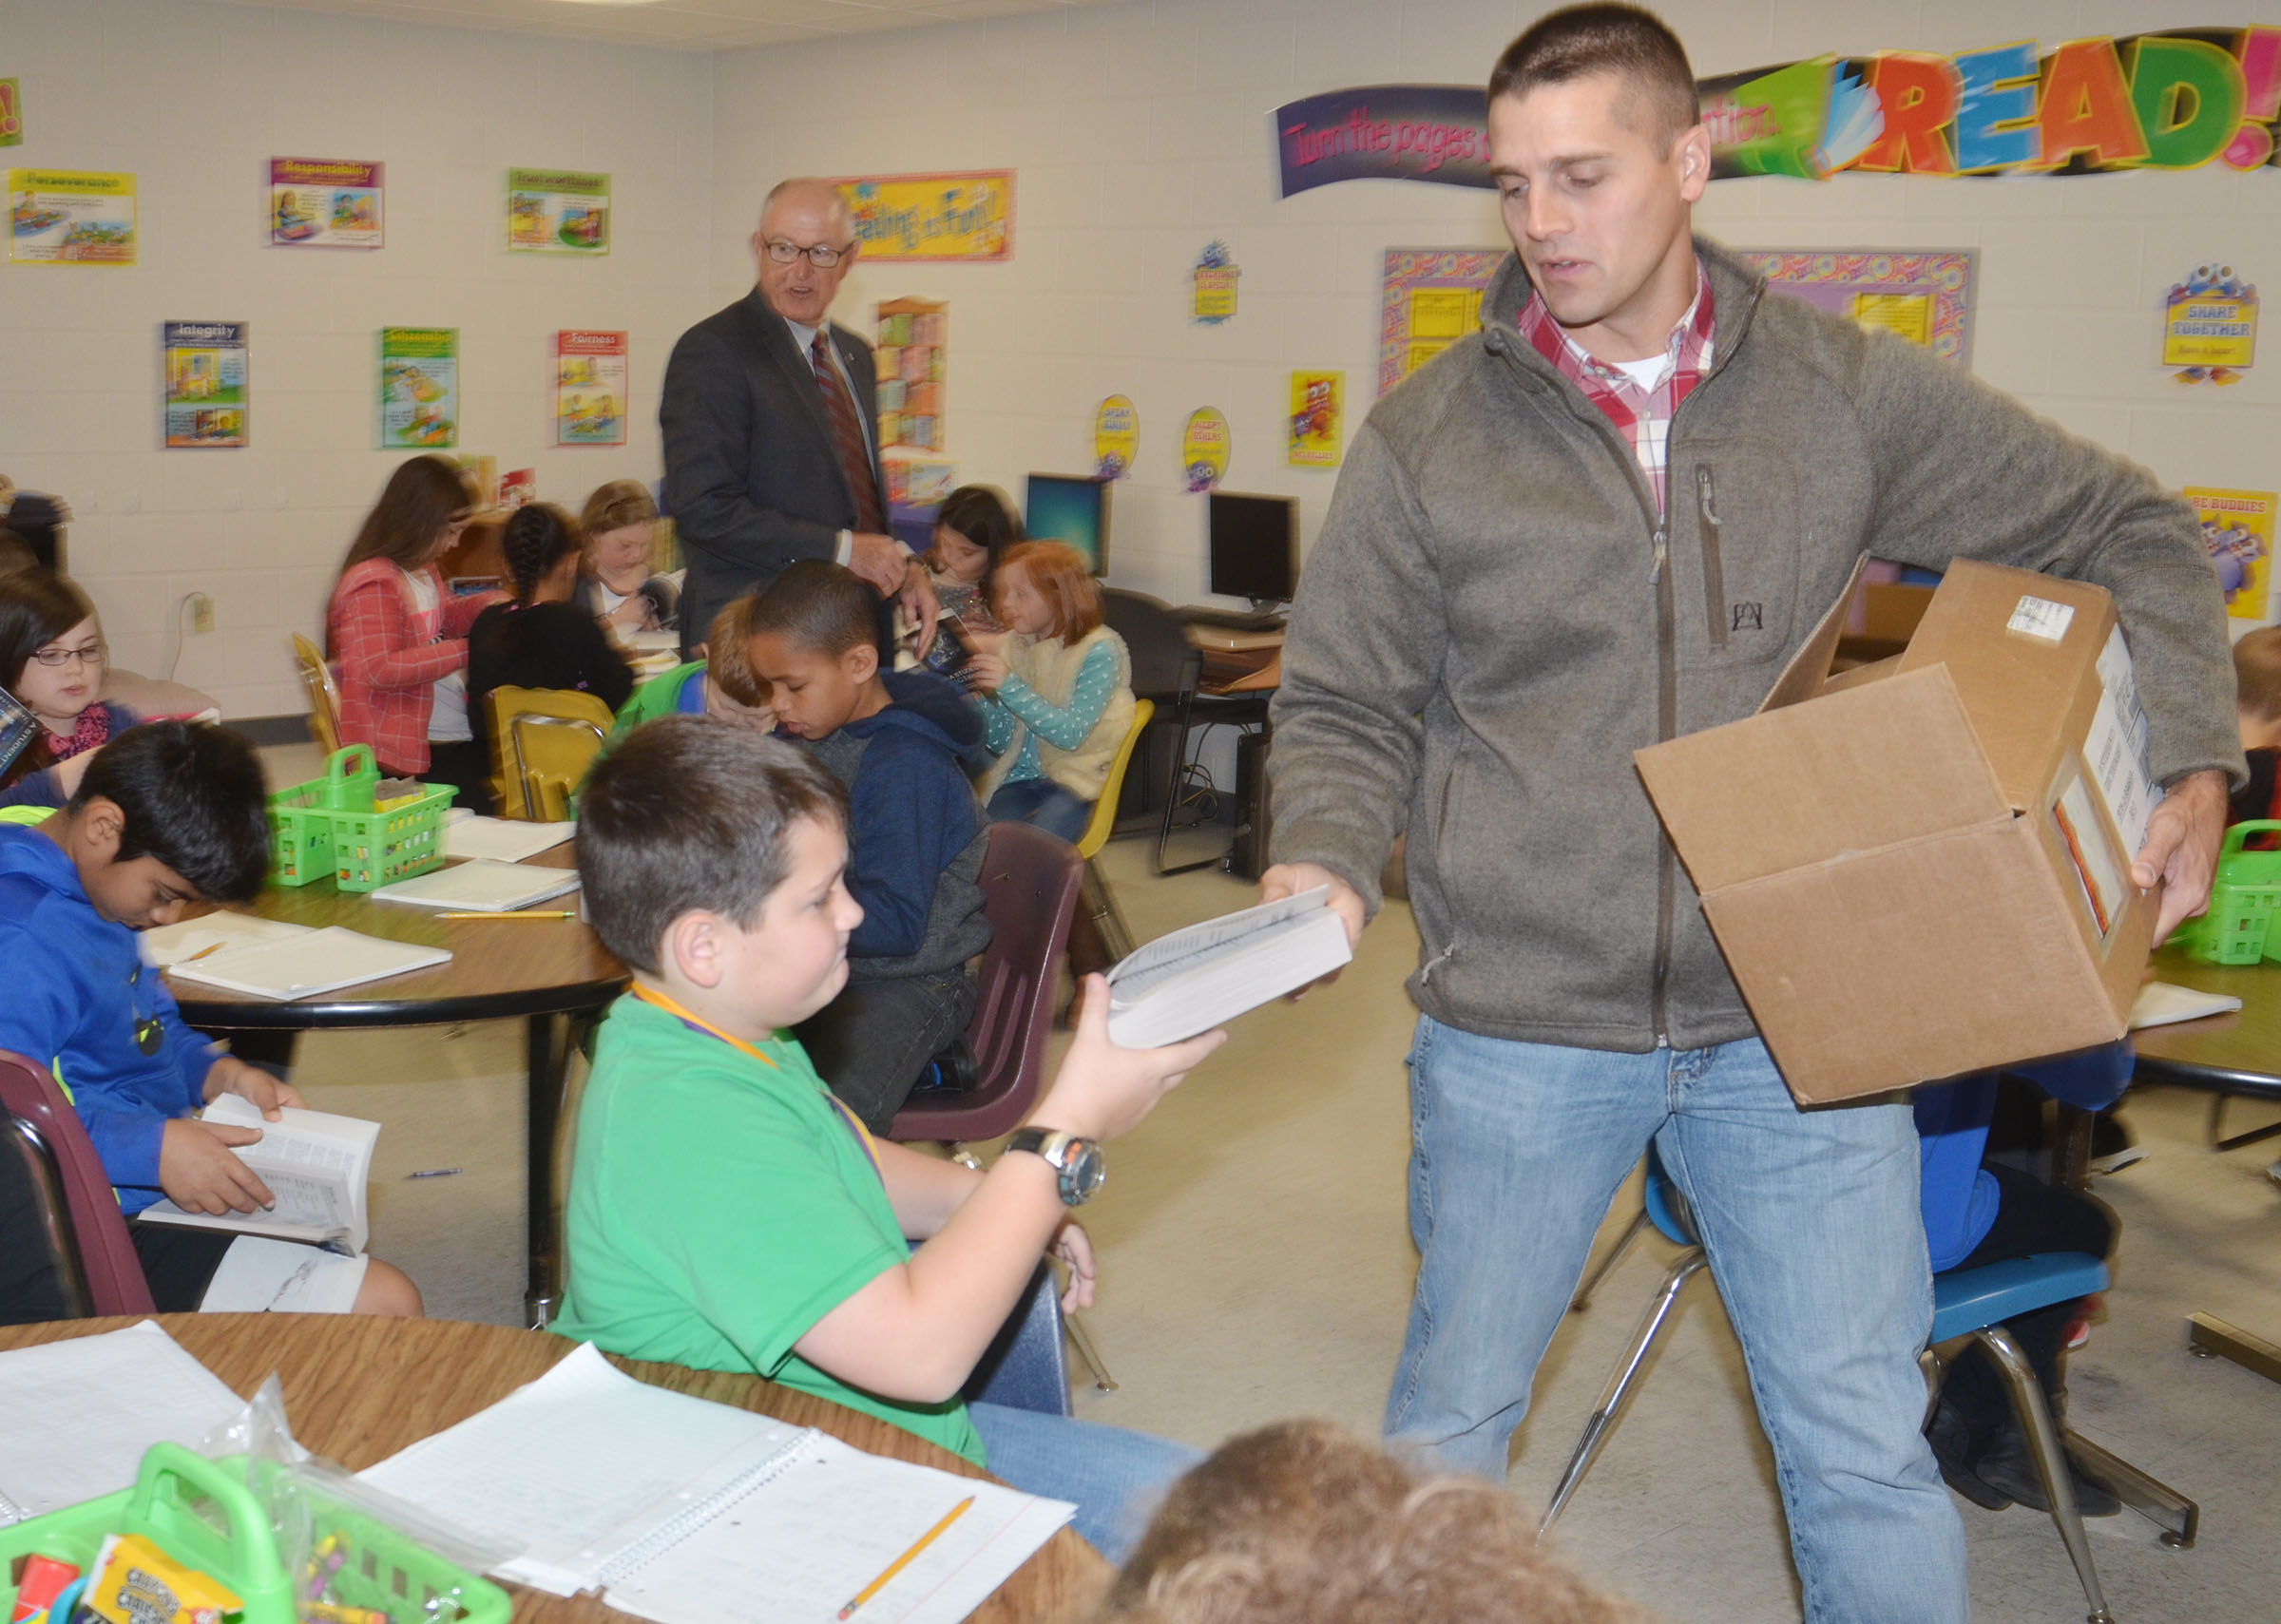 Campbellsville Rotary Club member Clark Howard passes out dictionaries to CES third-grade students.